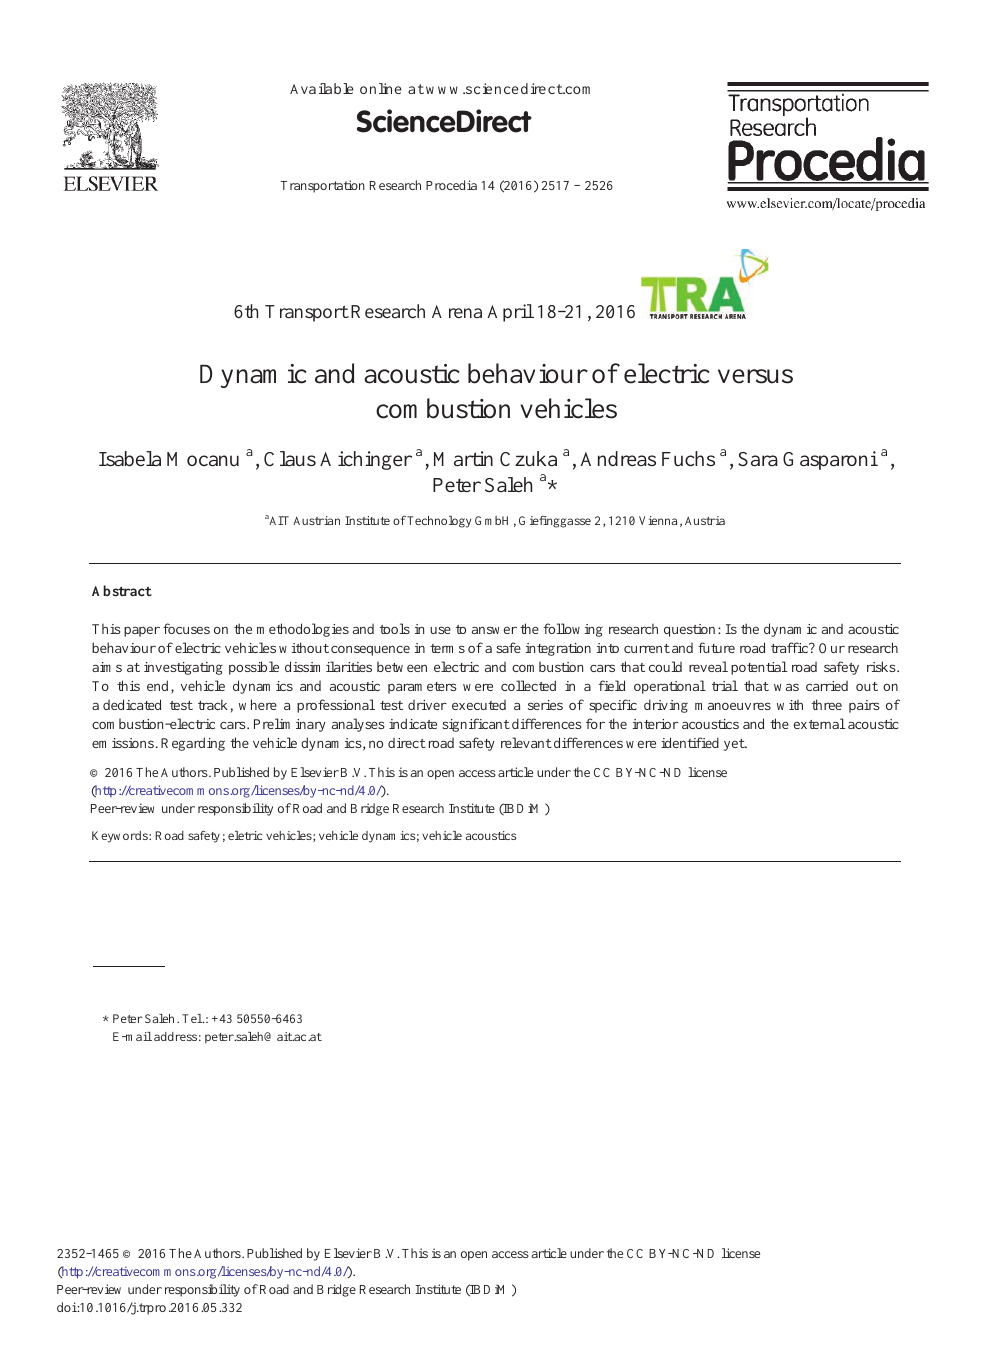 Dynamic and Acoustic Behaviour of Electric Versus Combustion